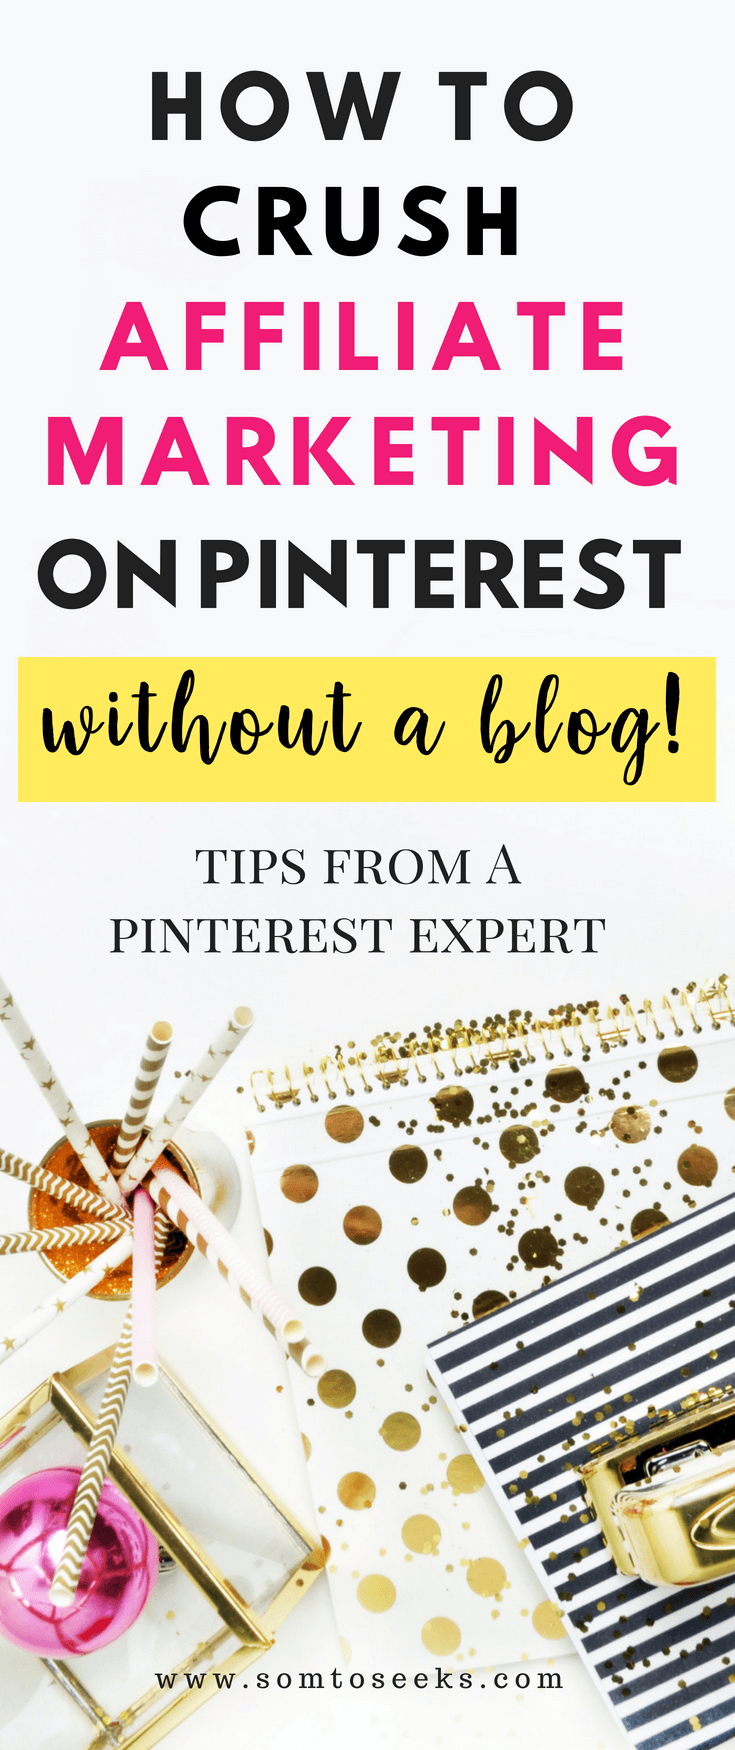 Comment faire du marketing d'affiliation sur Pinterest sans blog - conseils de Pinterest Expert